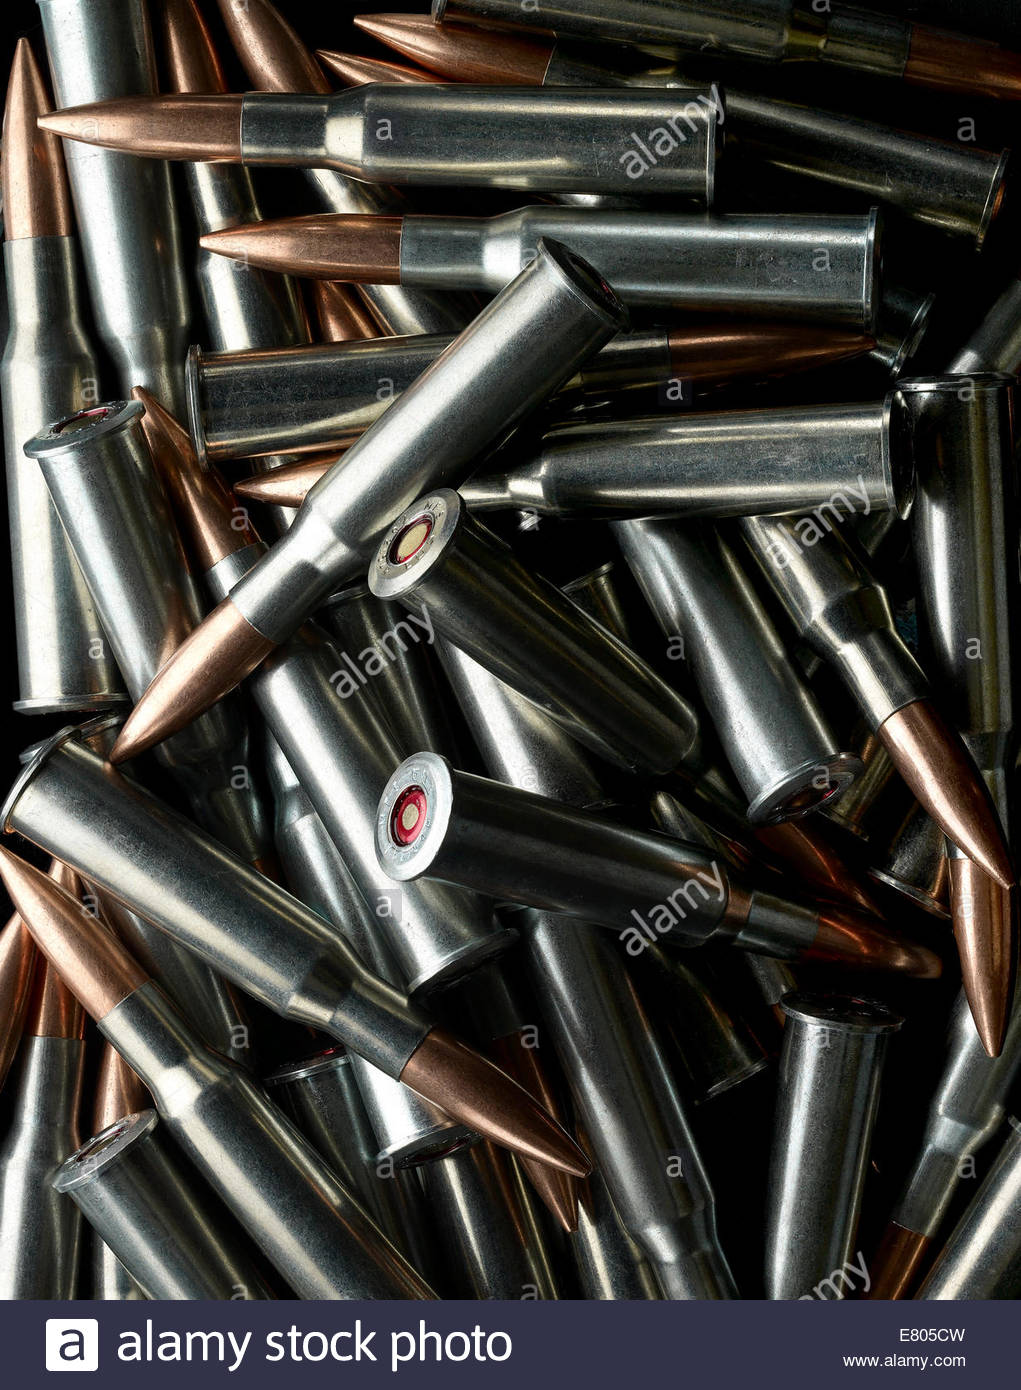 Still life of a pile of bullets - Stock Image